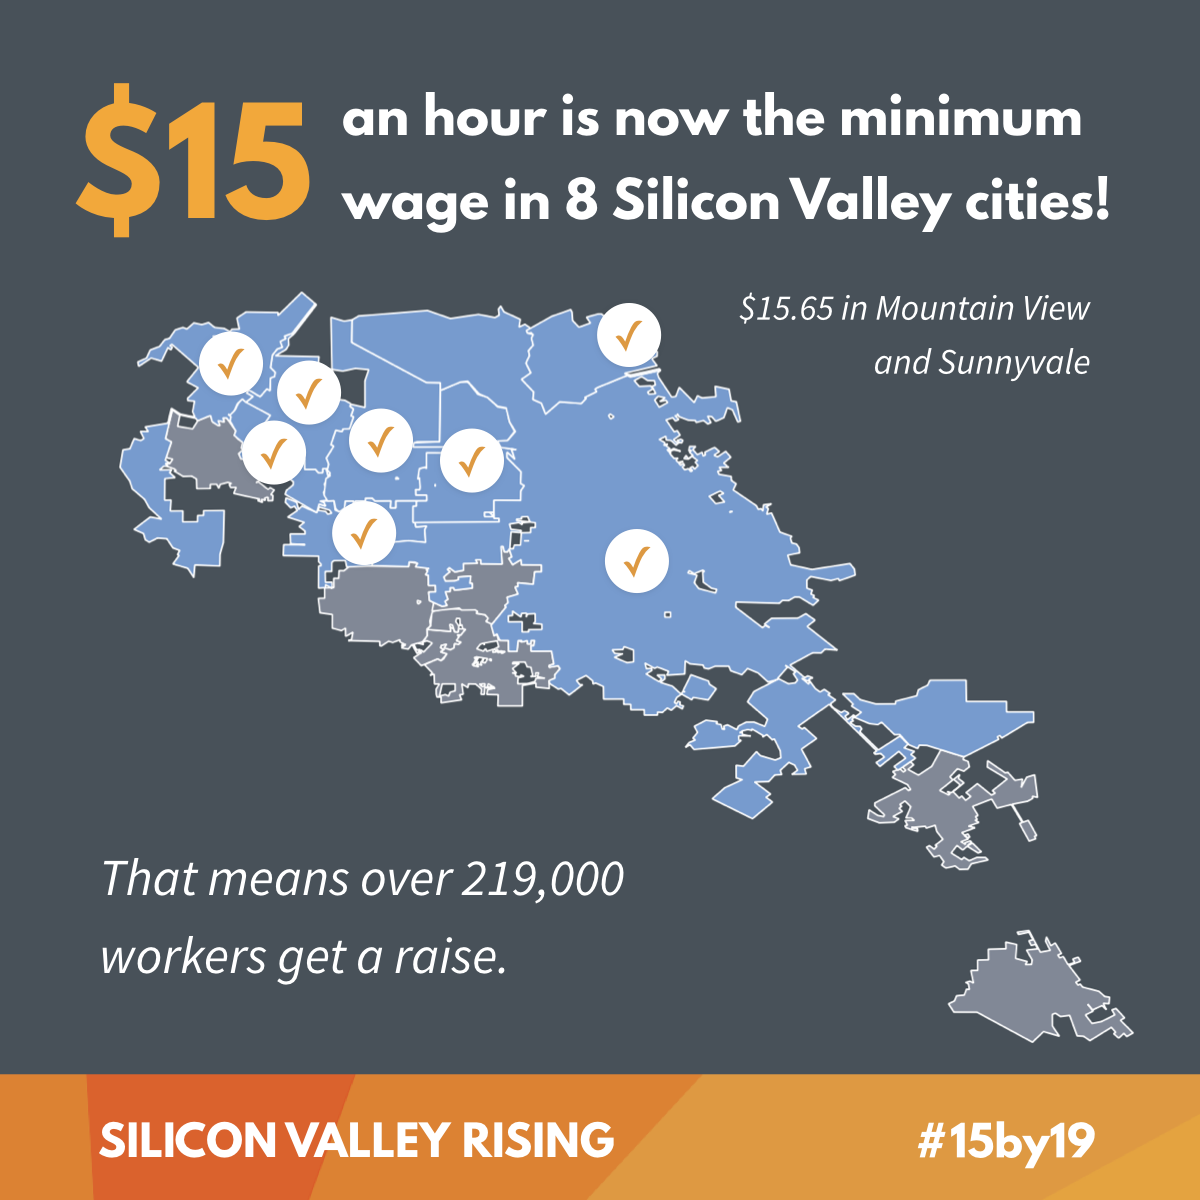 $15 an hour is now the minimum wage in 8 Silicon Valley cities!